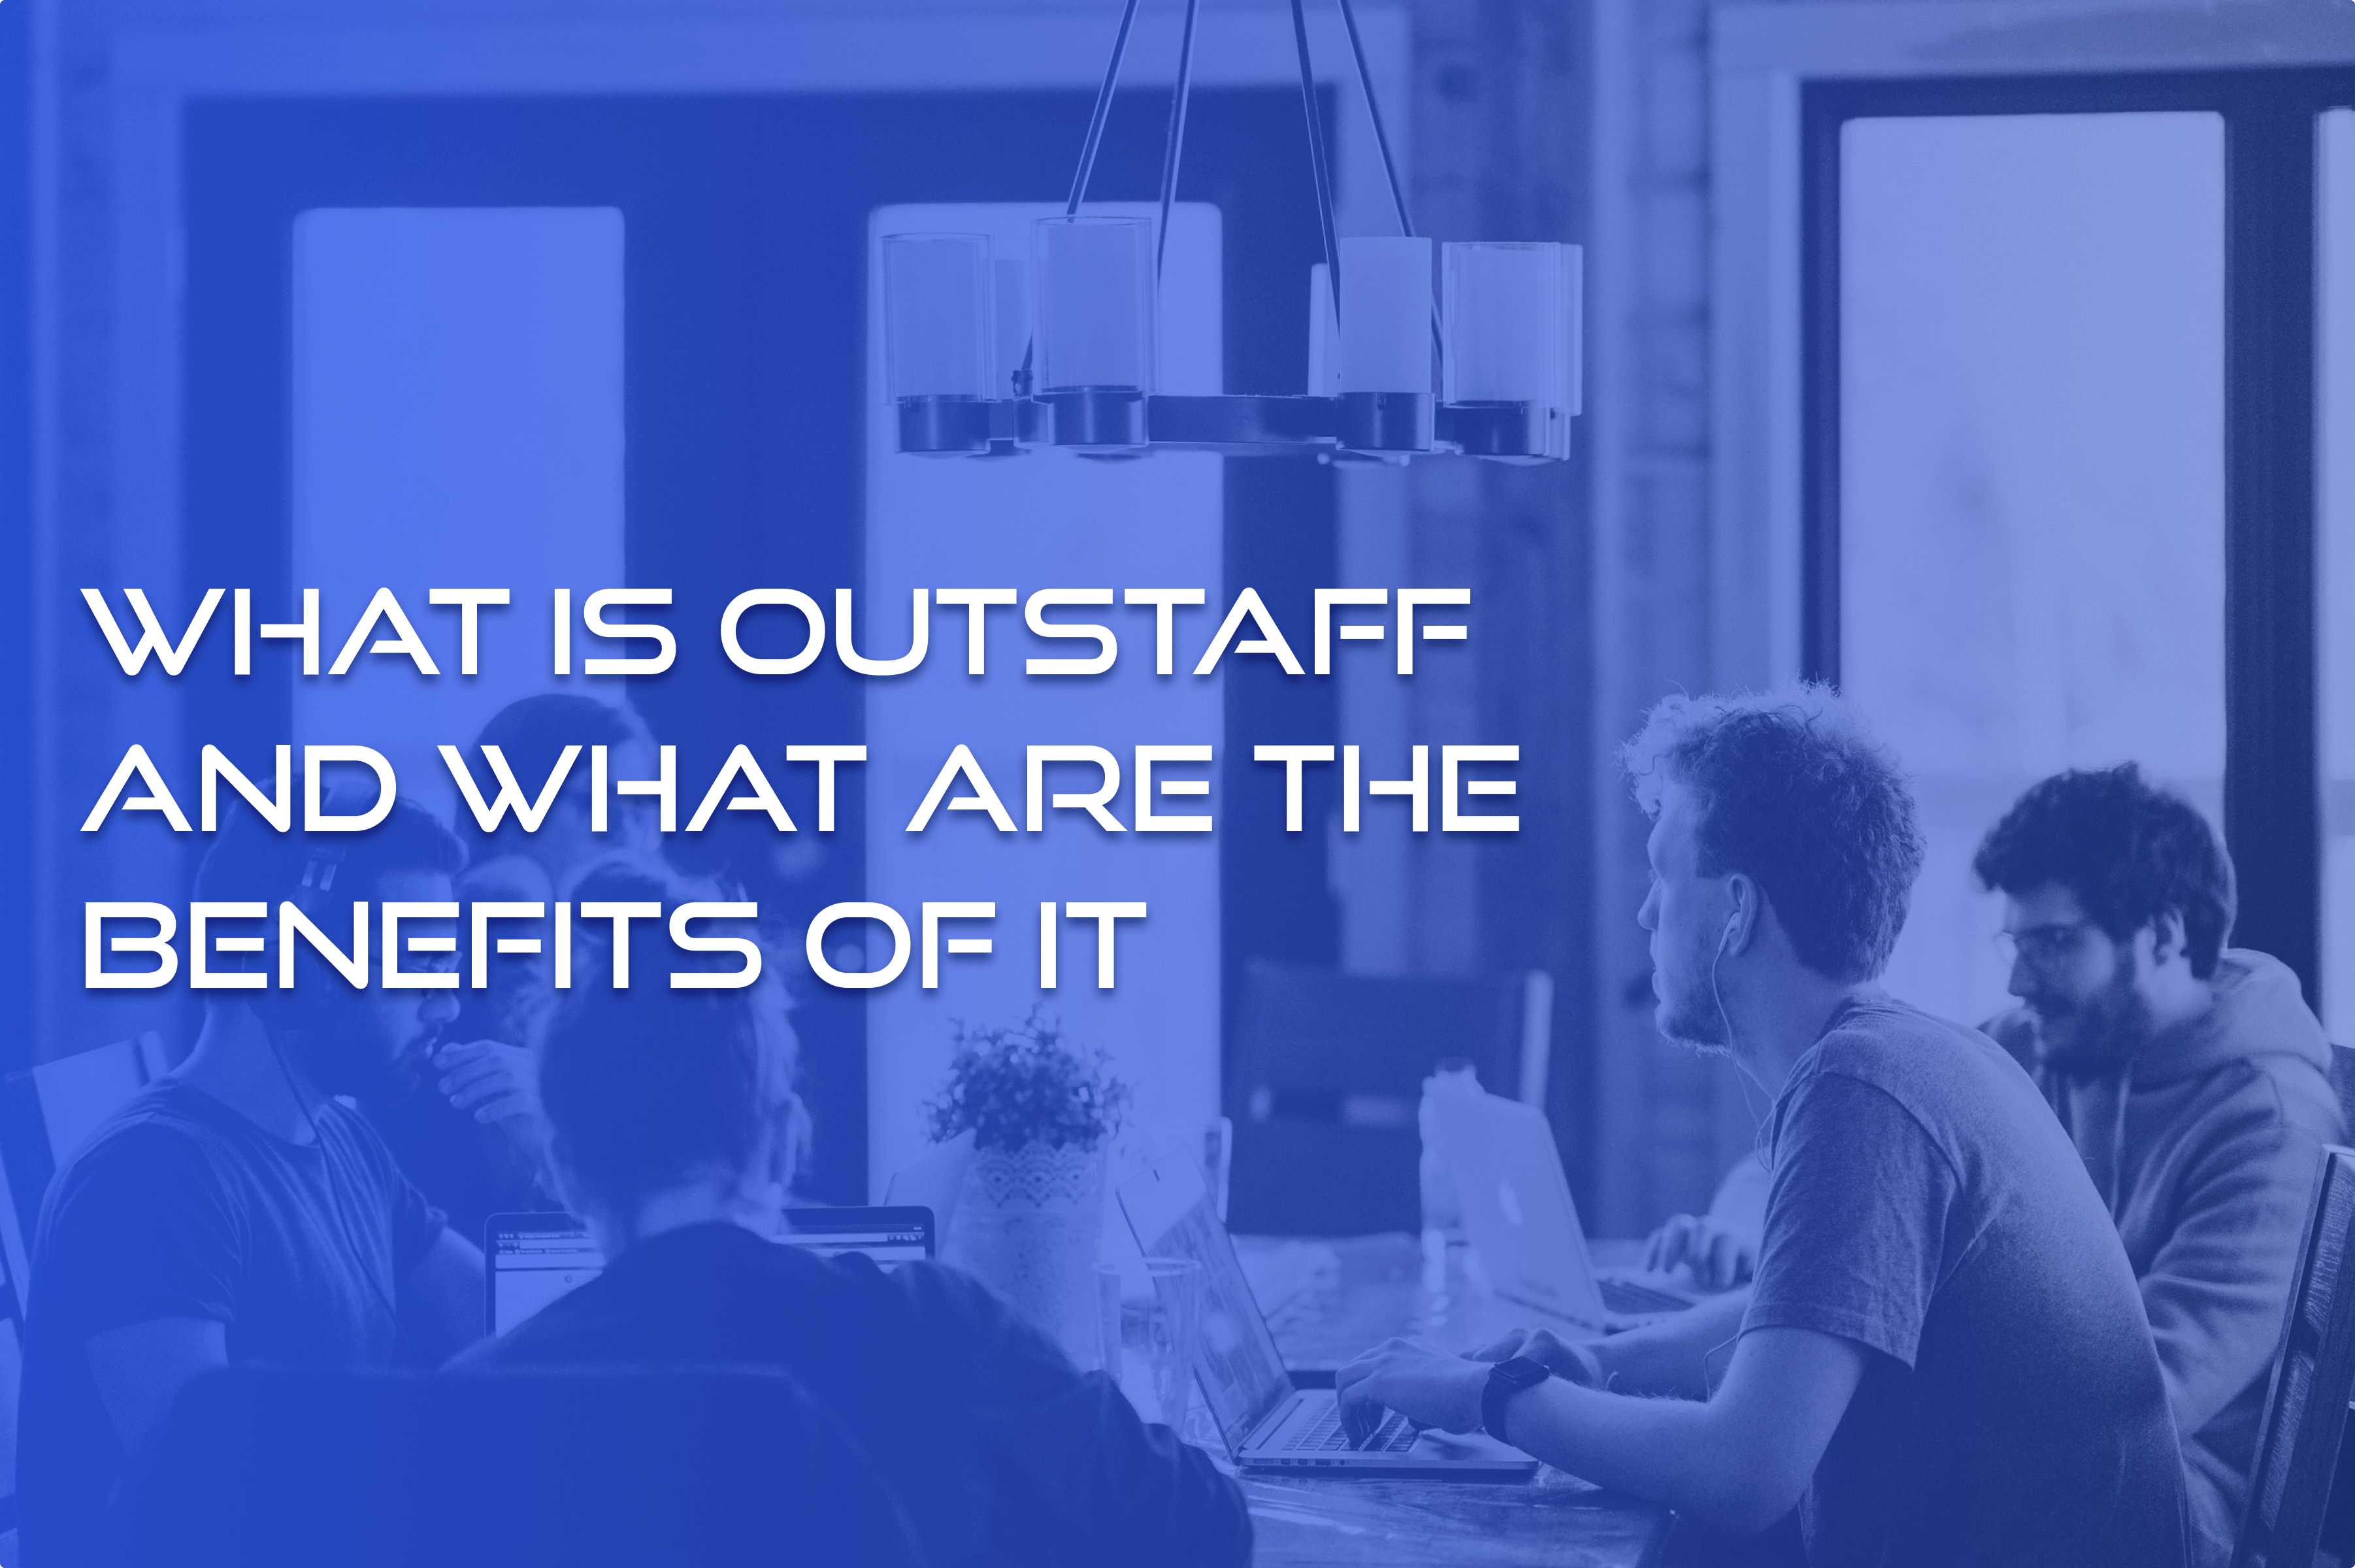 outsourcing and outstaffing